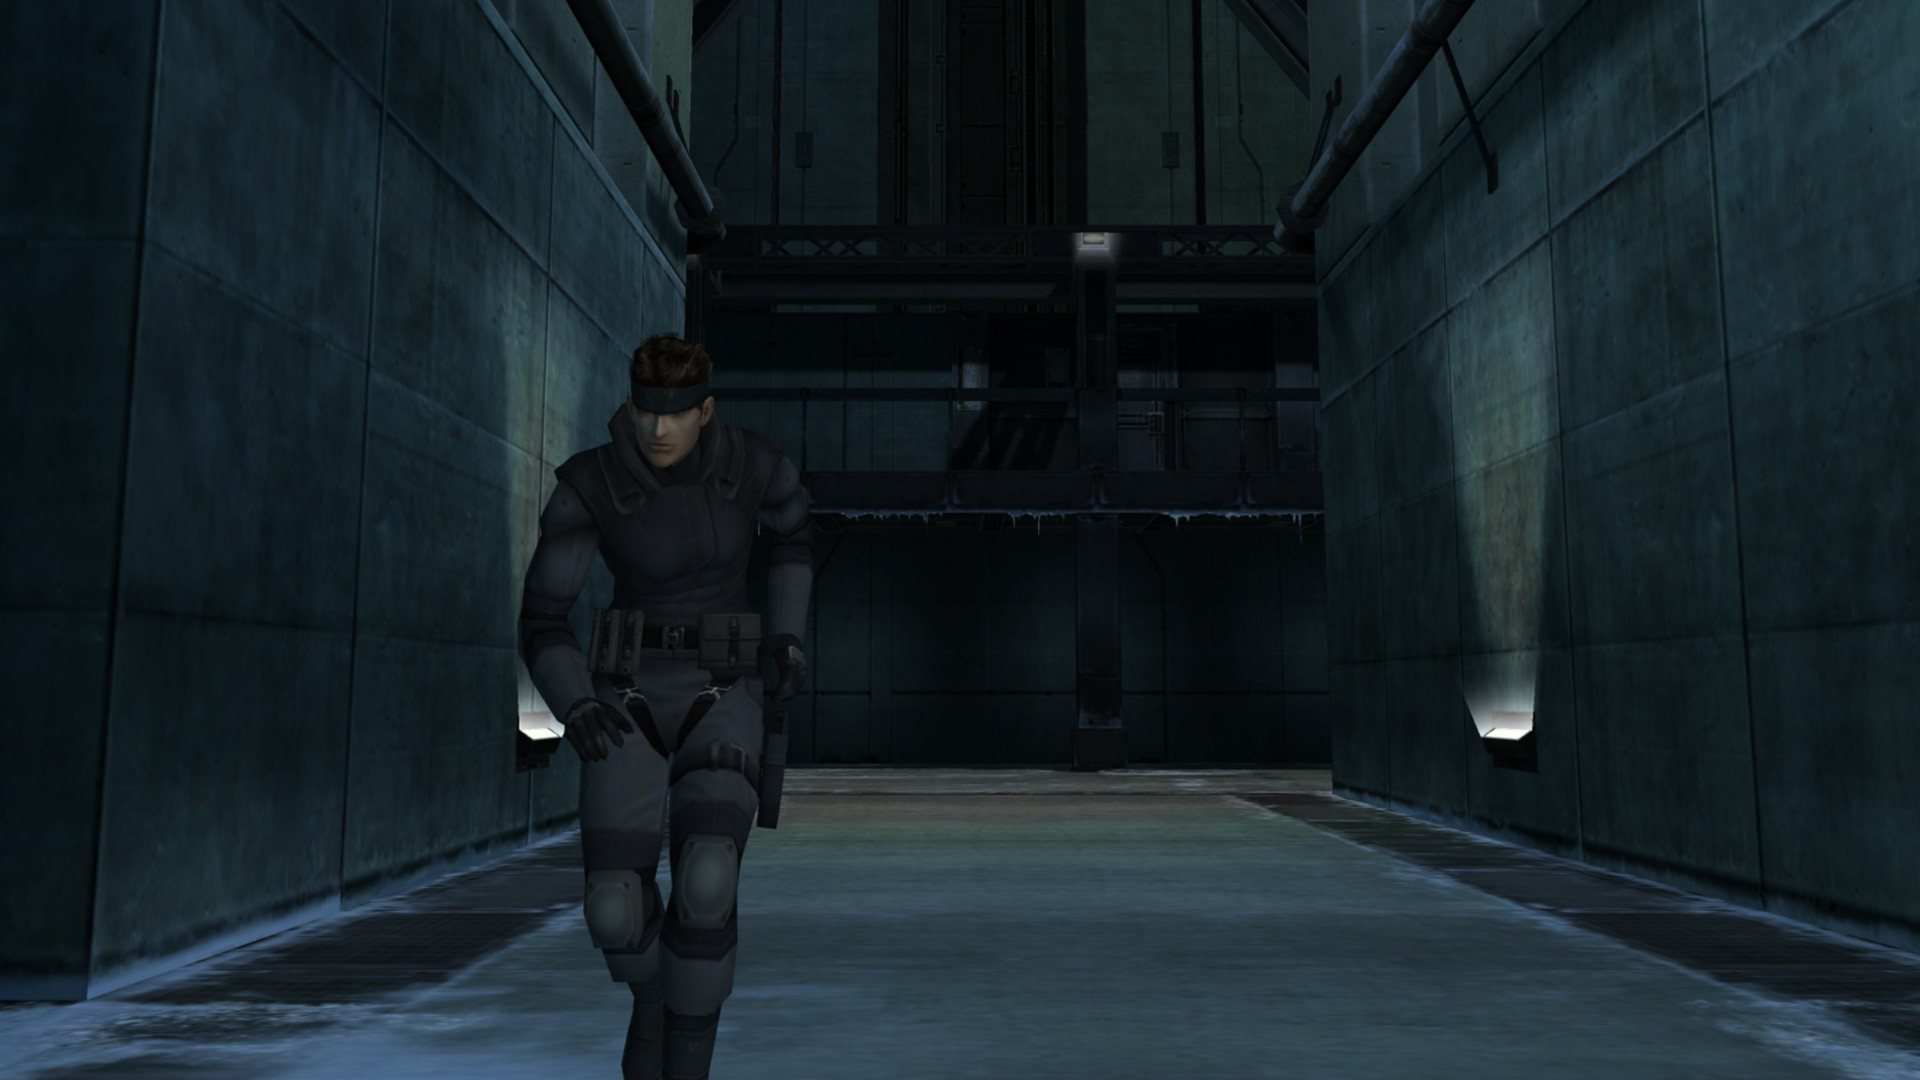 3d Snake Wallpaper Hd Metal Gear Solid Solid Snake Gamecube Metal Gear Solid The